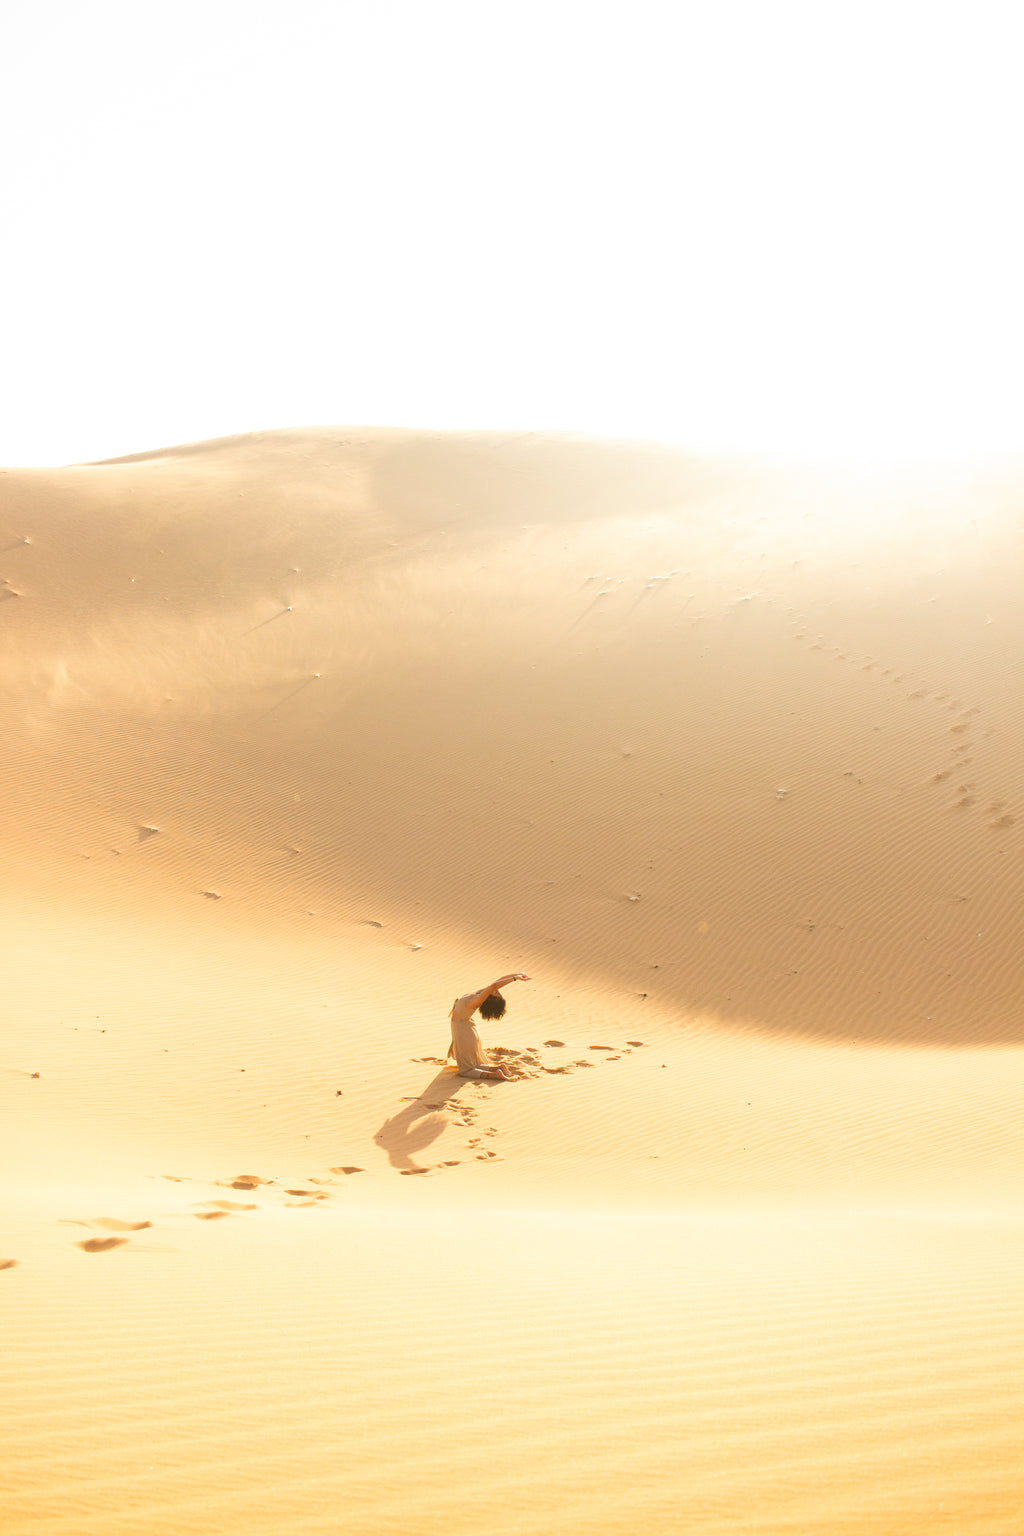 girl in the middle of sand dunes during golden hour sunset